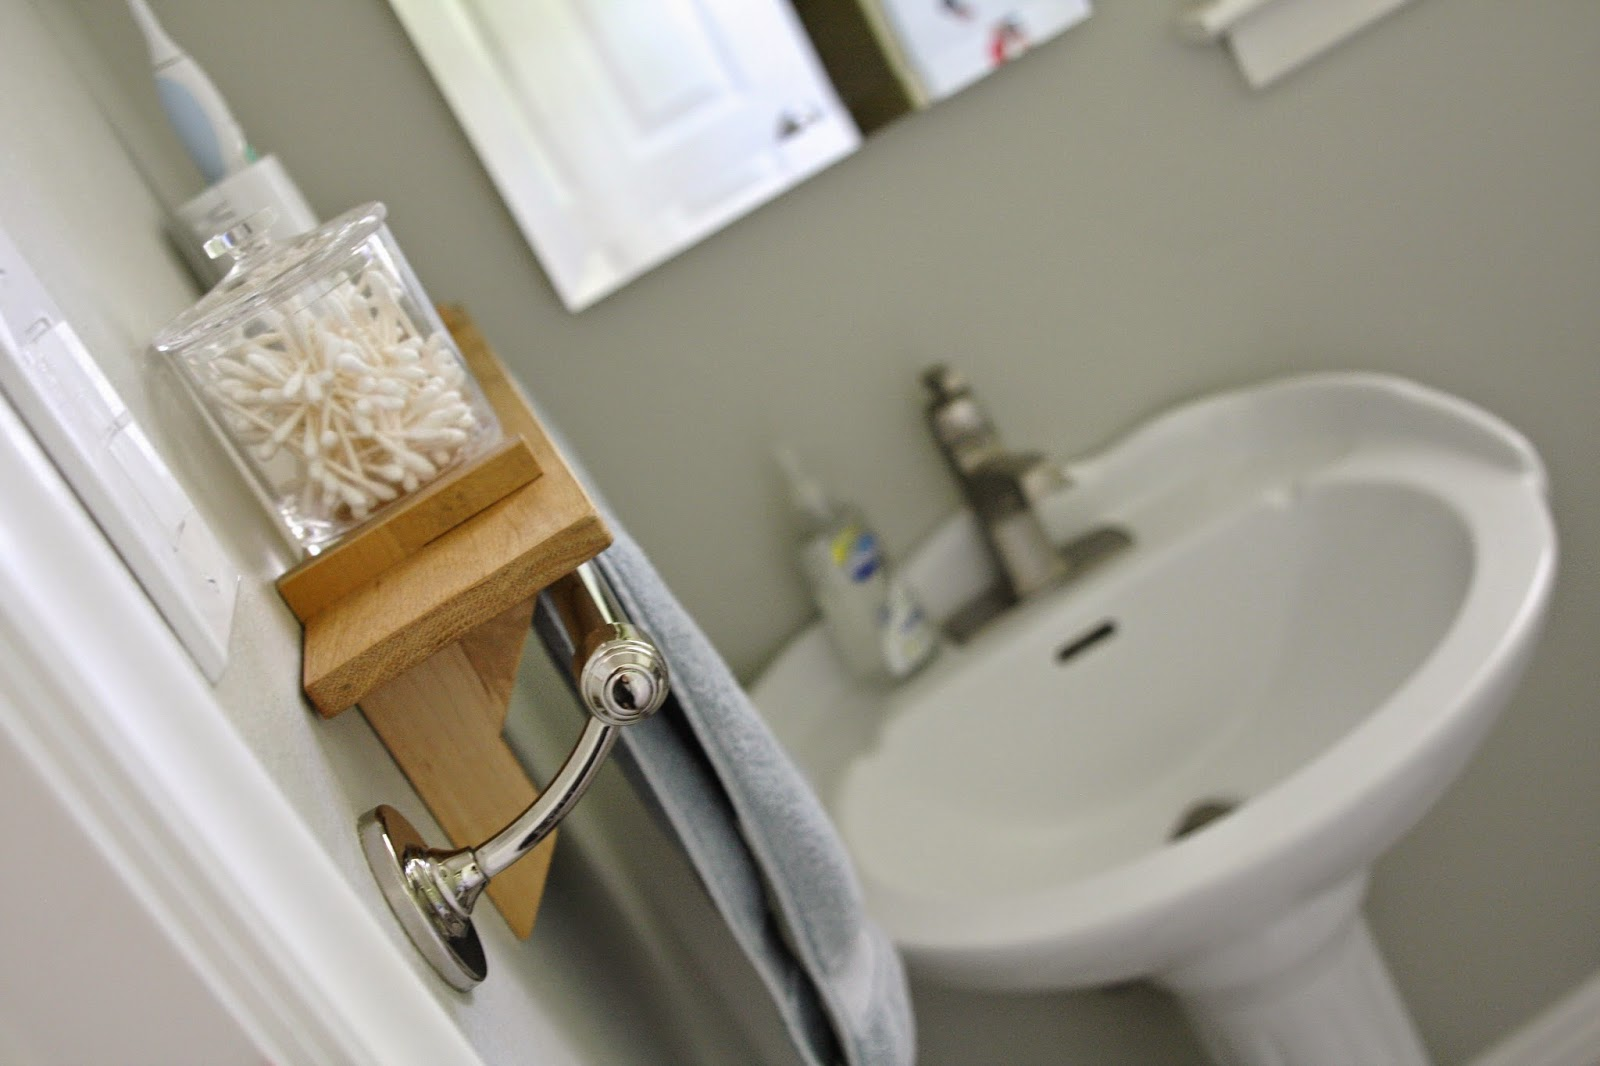 Fabulous This product is a bathroom space game changer Every bathroom needs one uor two